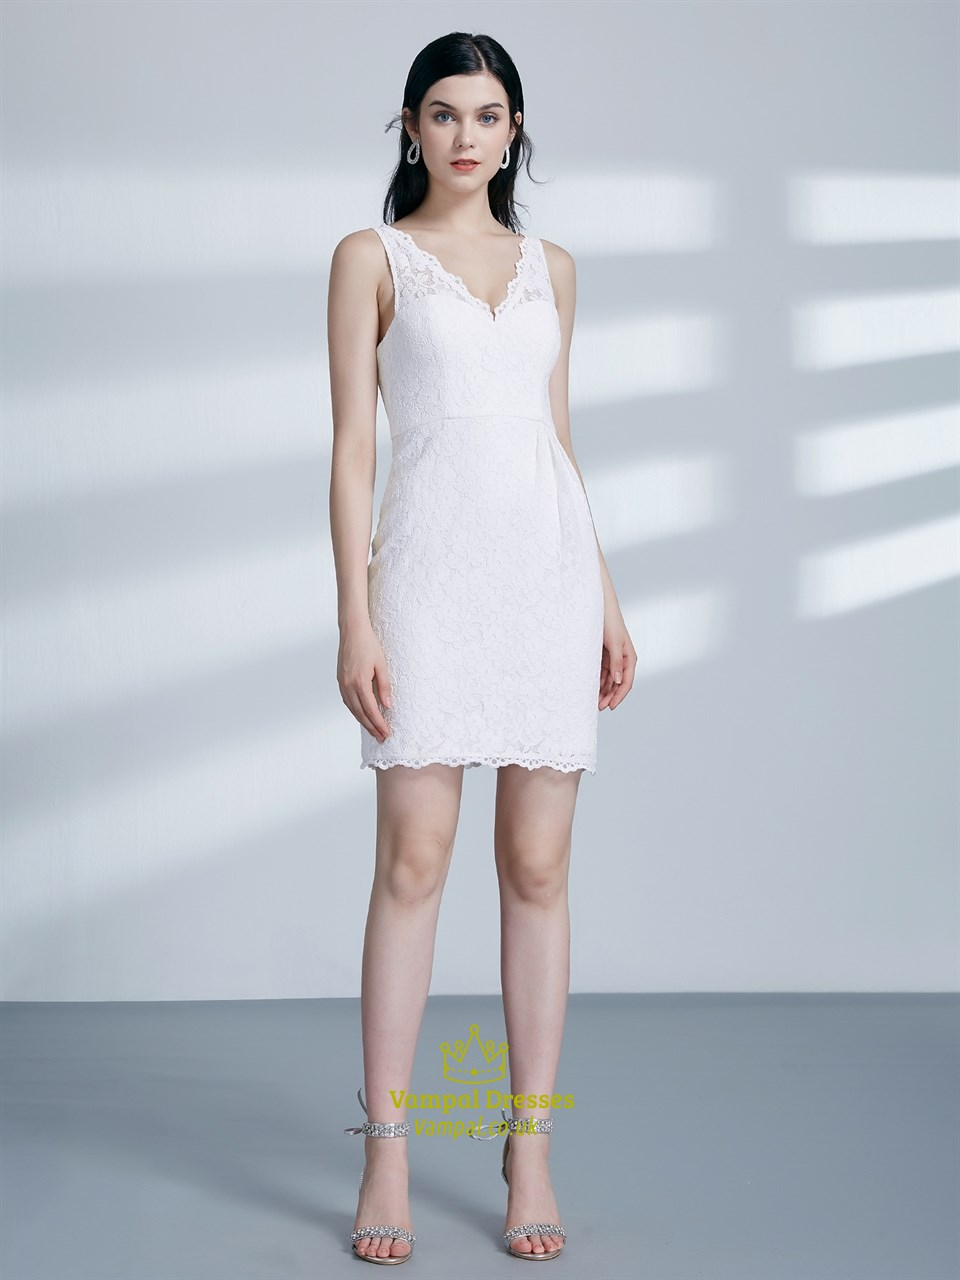 cb1ce93b5d2 Simple White V Neck Sleeveless Sheath Lace Overlay Short Prom Dress SKU  -C602